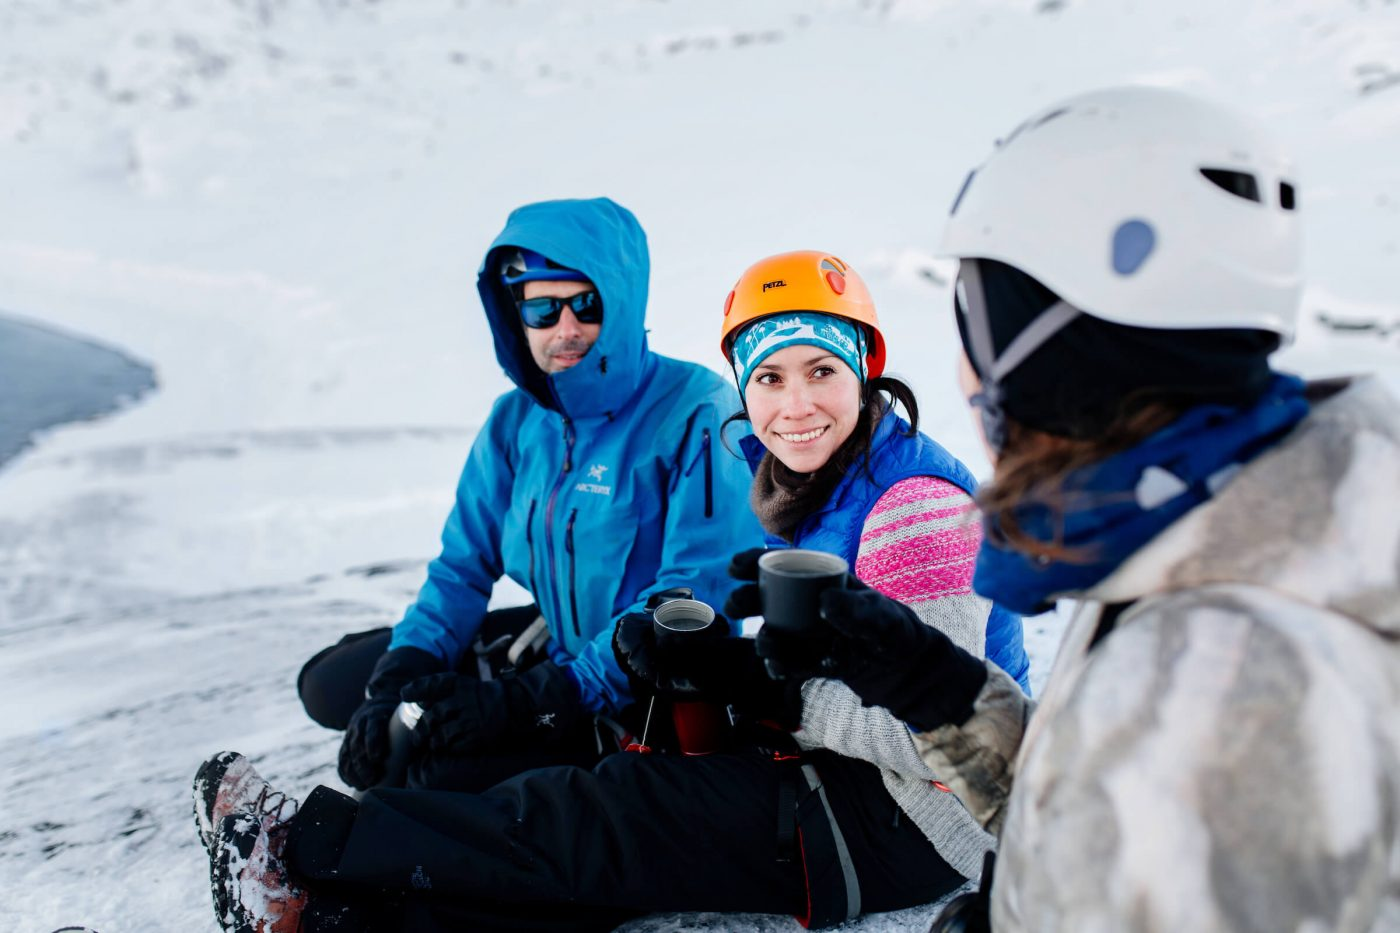 Mountain guide Marc Carreras taking a break with tourists on winter hike in Nuuk in Greenland. By Rebecca Gustafsson